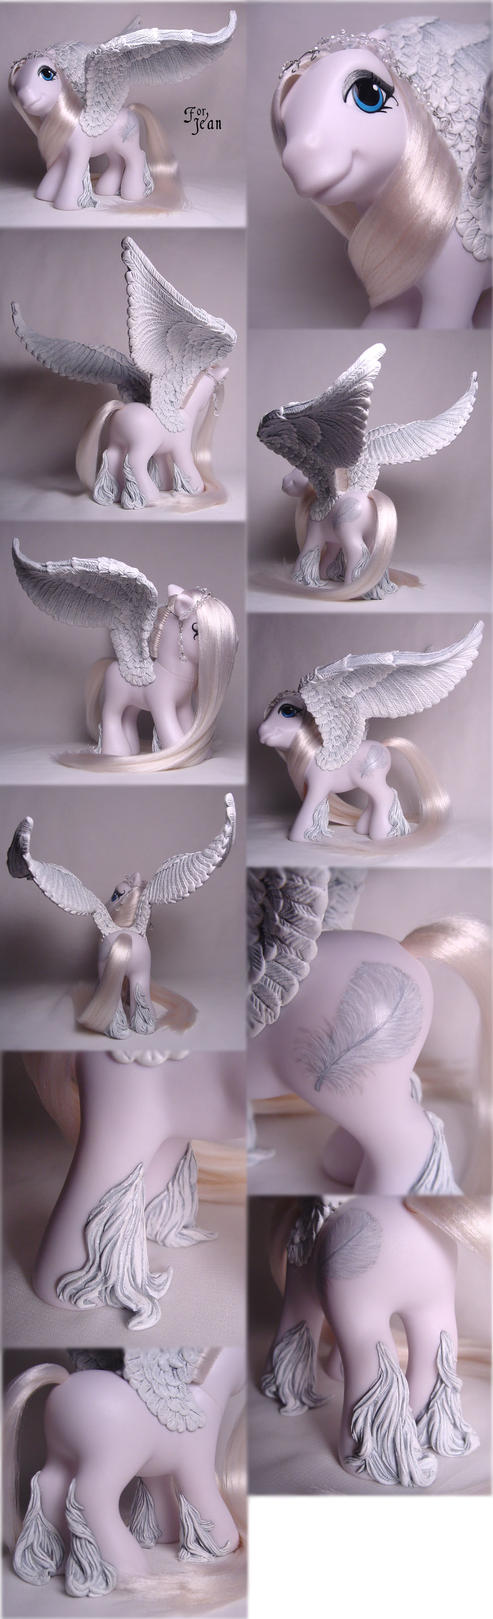 White Pegasus for Jean by Woosie